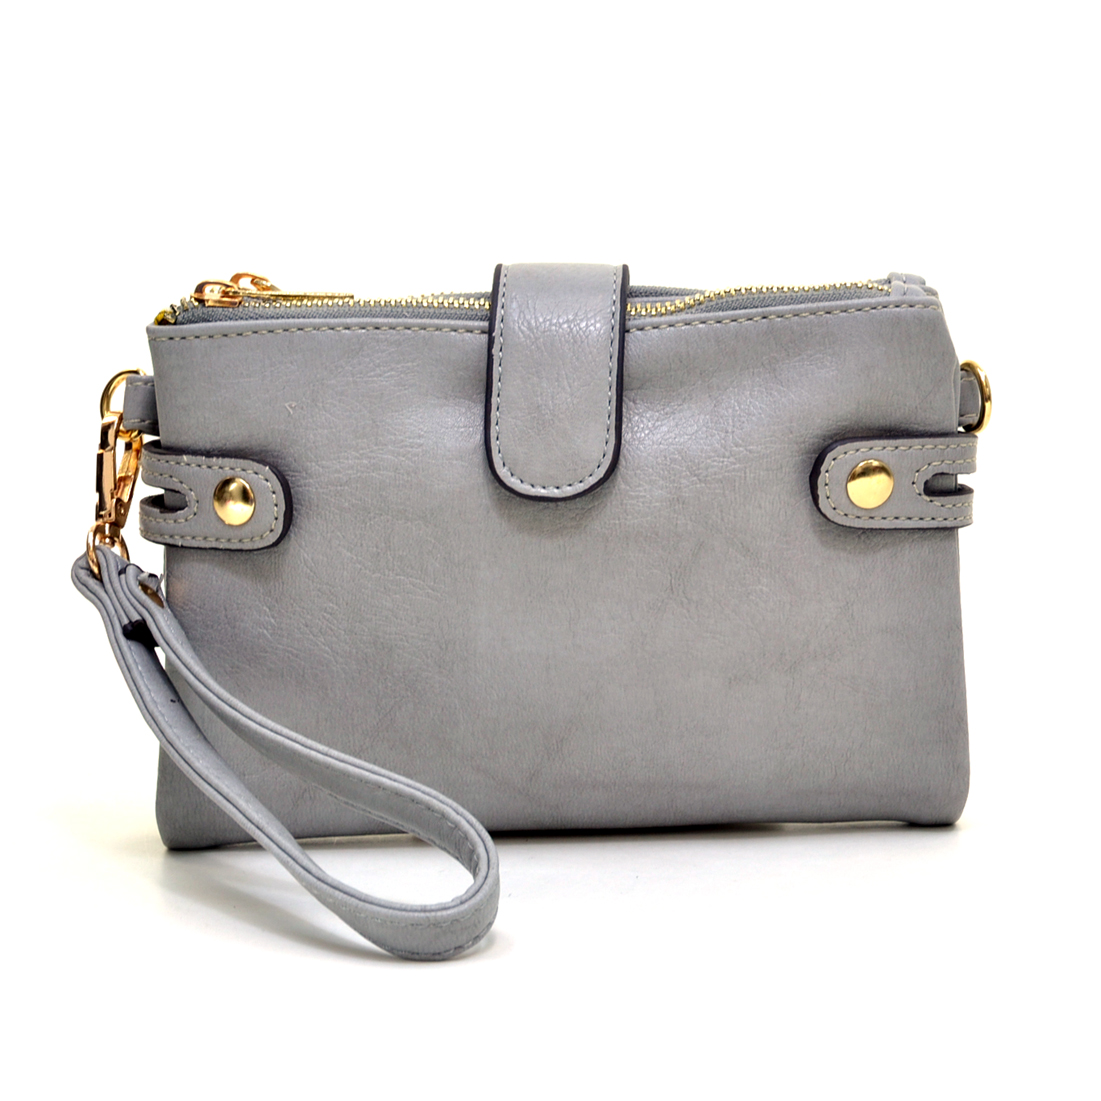 Cross Body Messenger Bag/Clutch with Removable Wrist Strap & Removable Adjustable Shoulder Strap